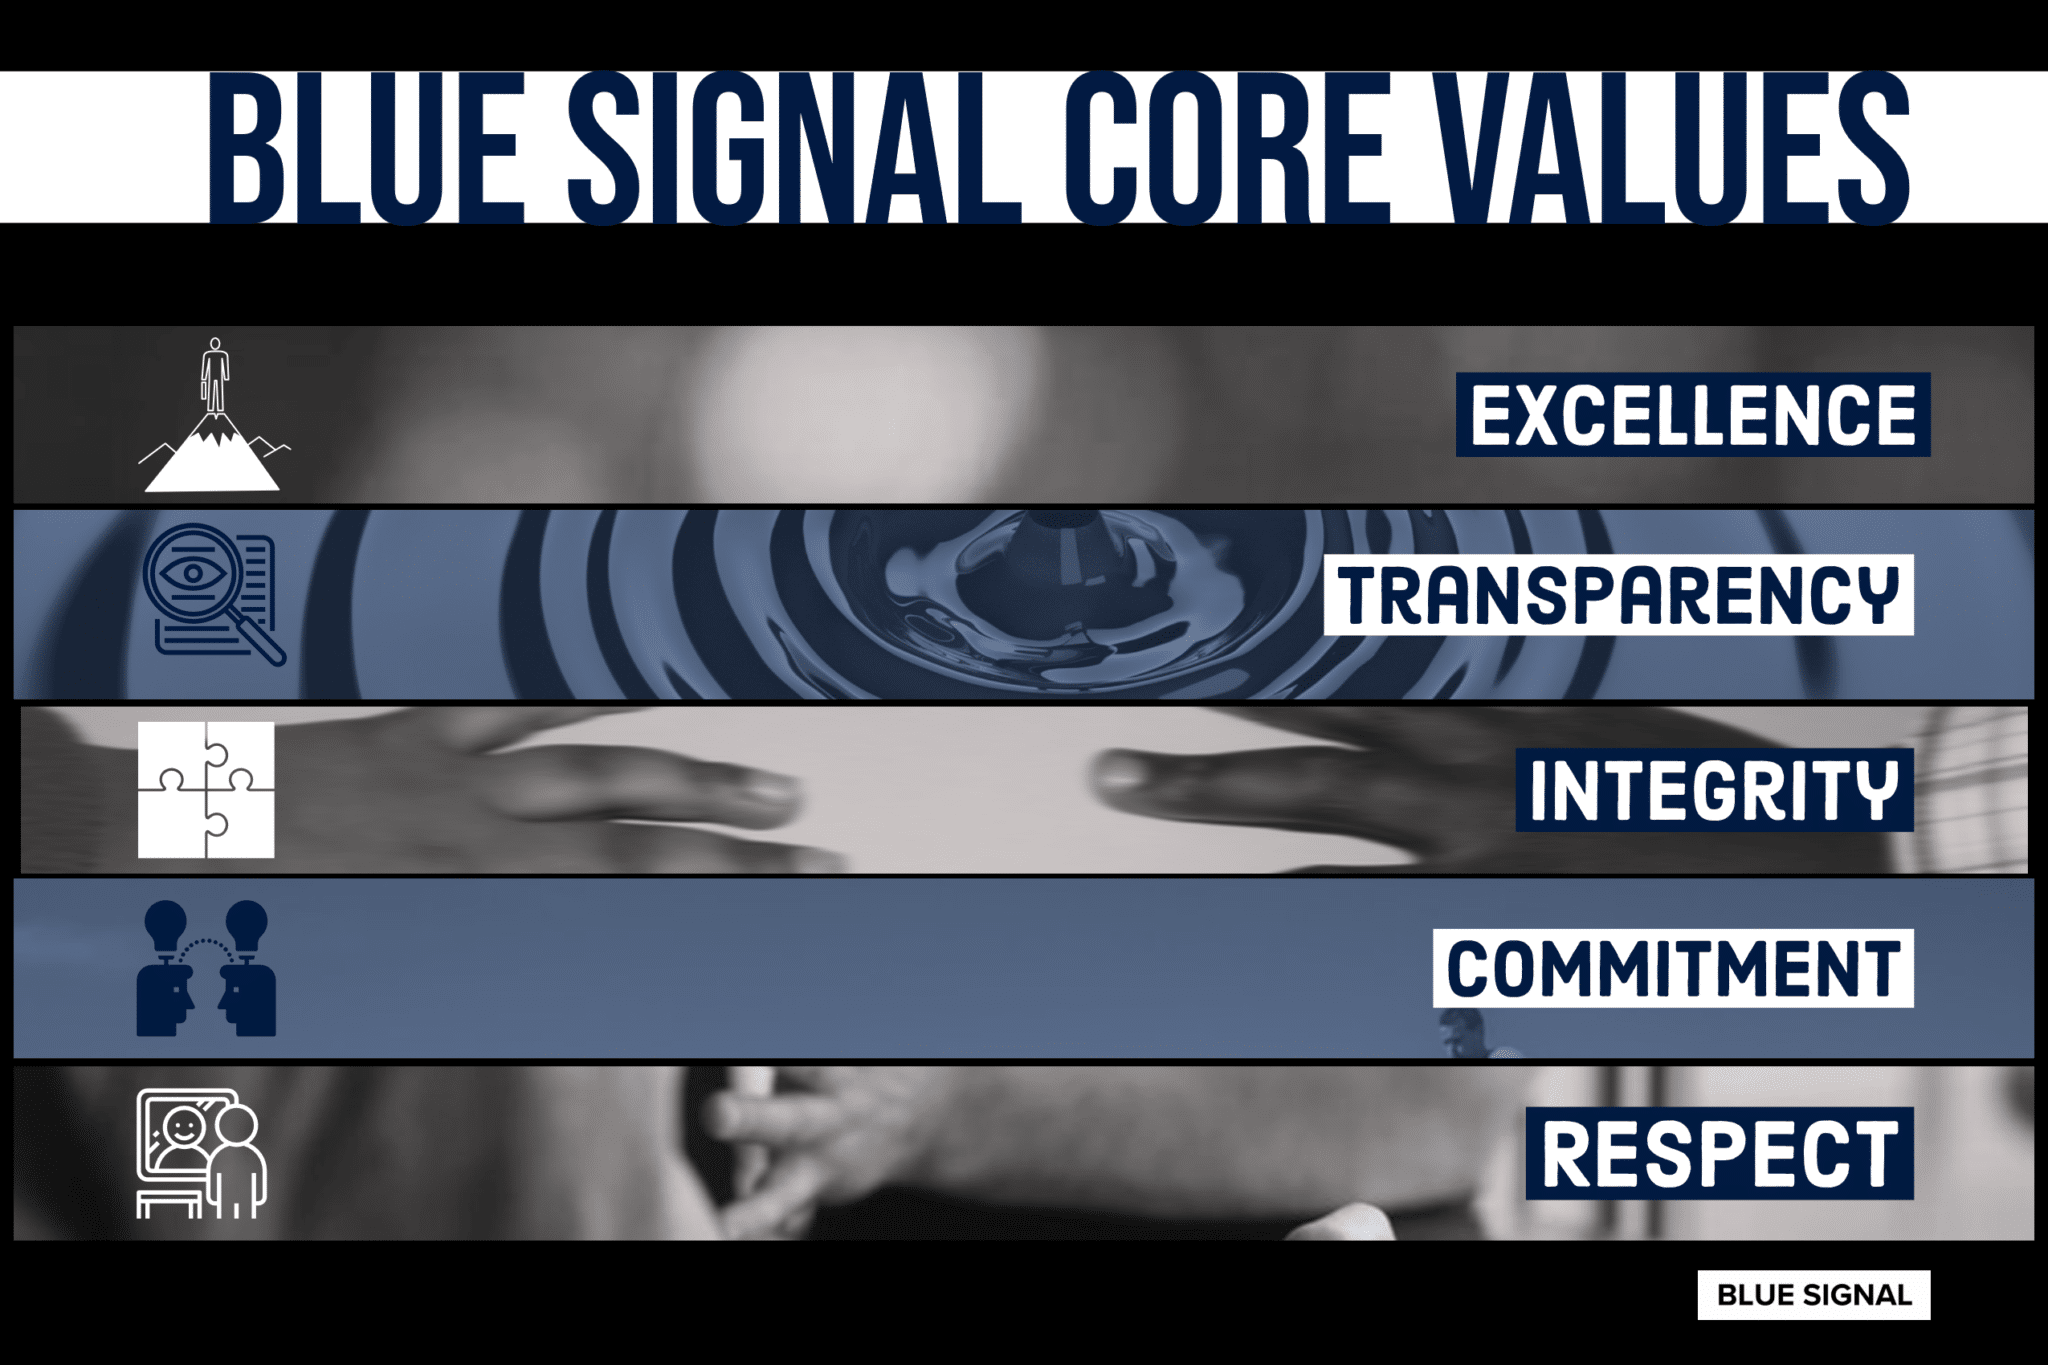 Blue Signal Core Values